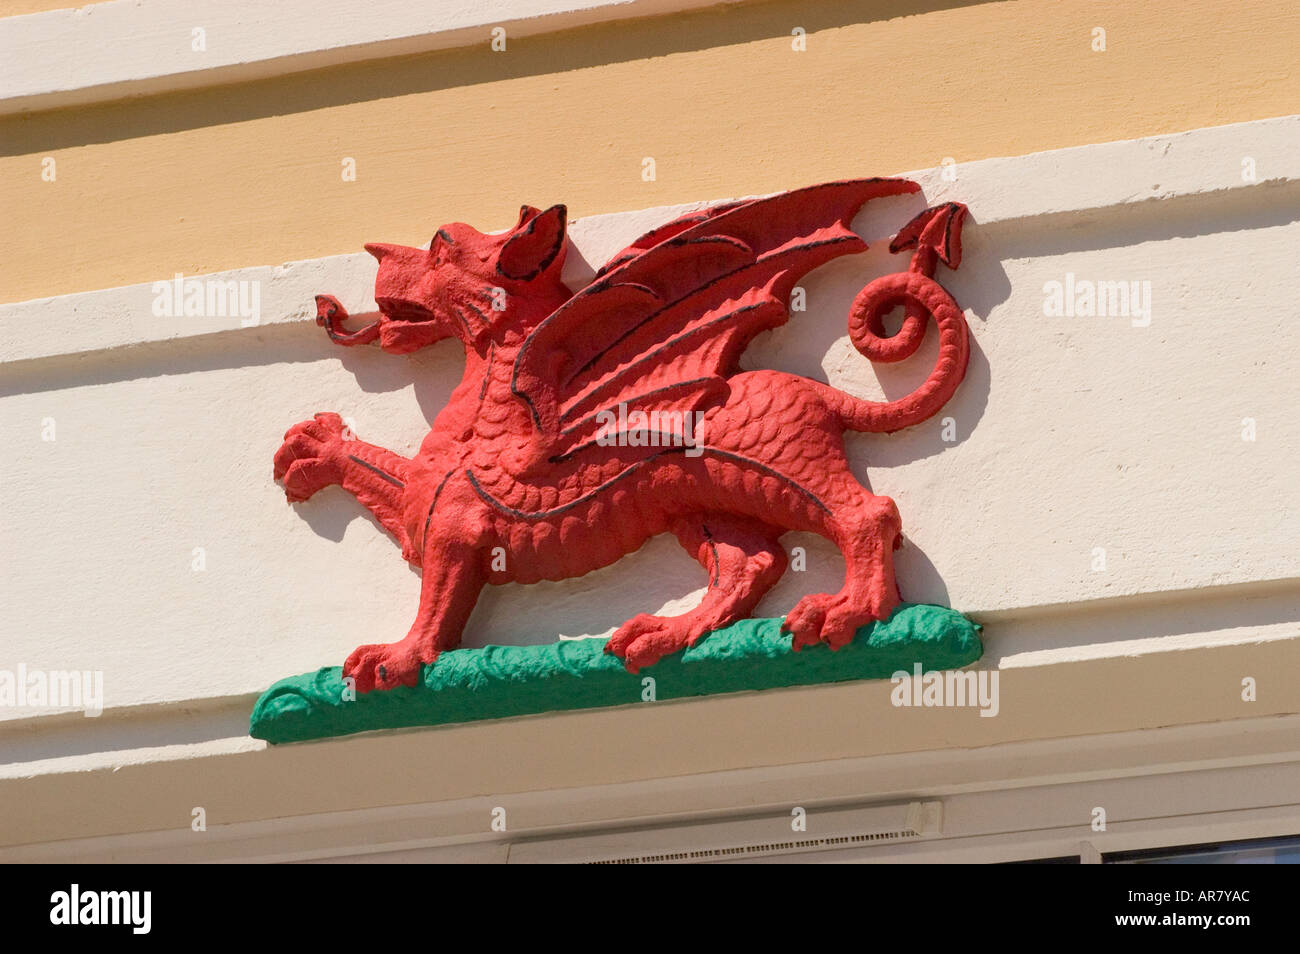 Relief Carving of a Red Dragon symbol of Wales at Cardiff Bay Historic Welsh Coal Exporting Port - Stock Image